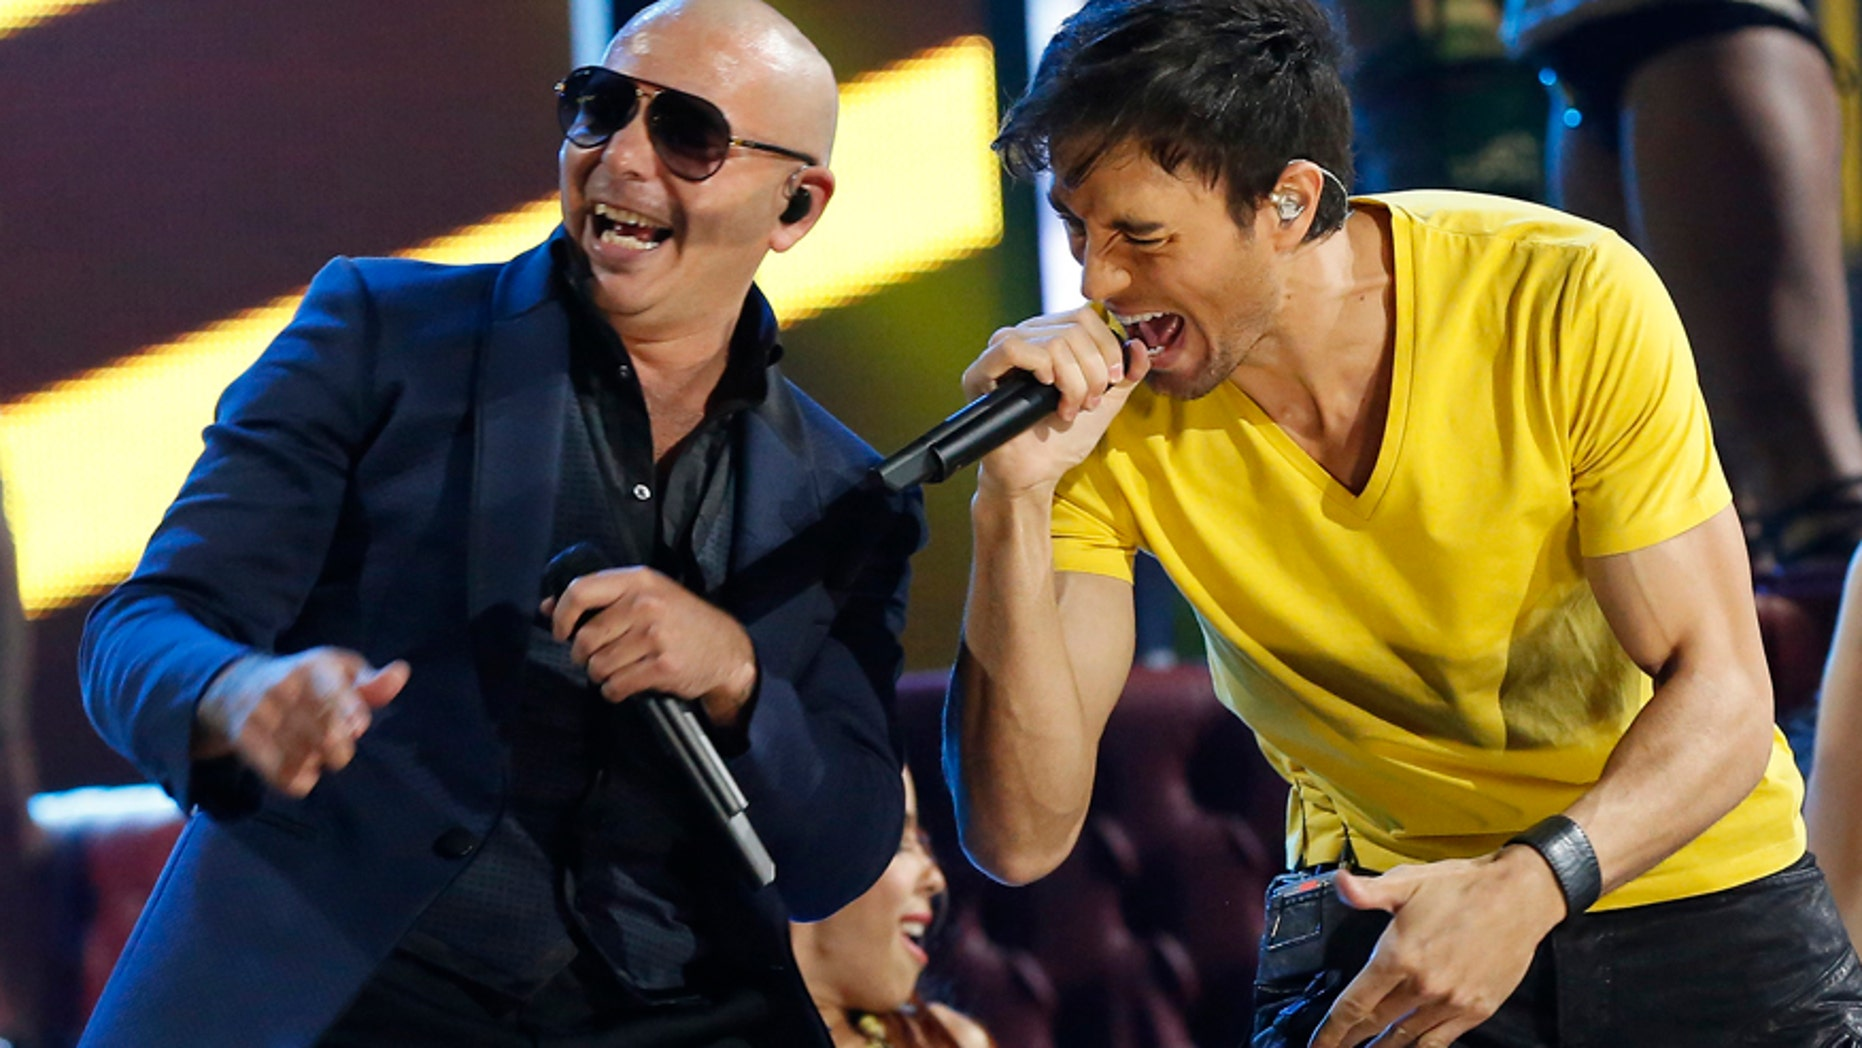 """Pitbull (L) and Enrique Igelsias perform """"Echa Pa'lla"""" during the 14th Latin Grammy Awards in Las Vegas, Nevada November 21, 2013."""